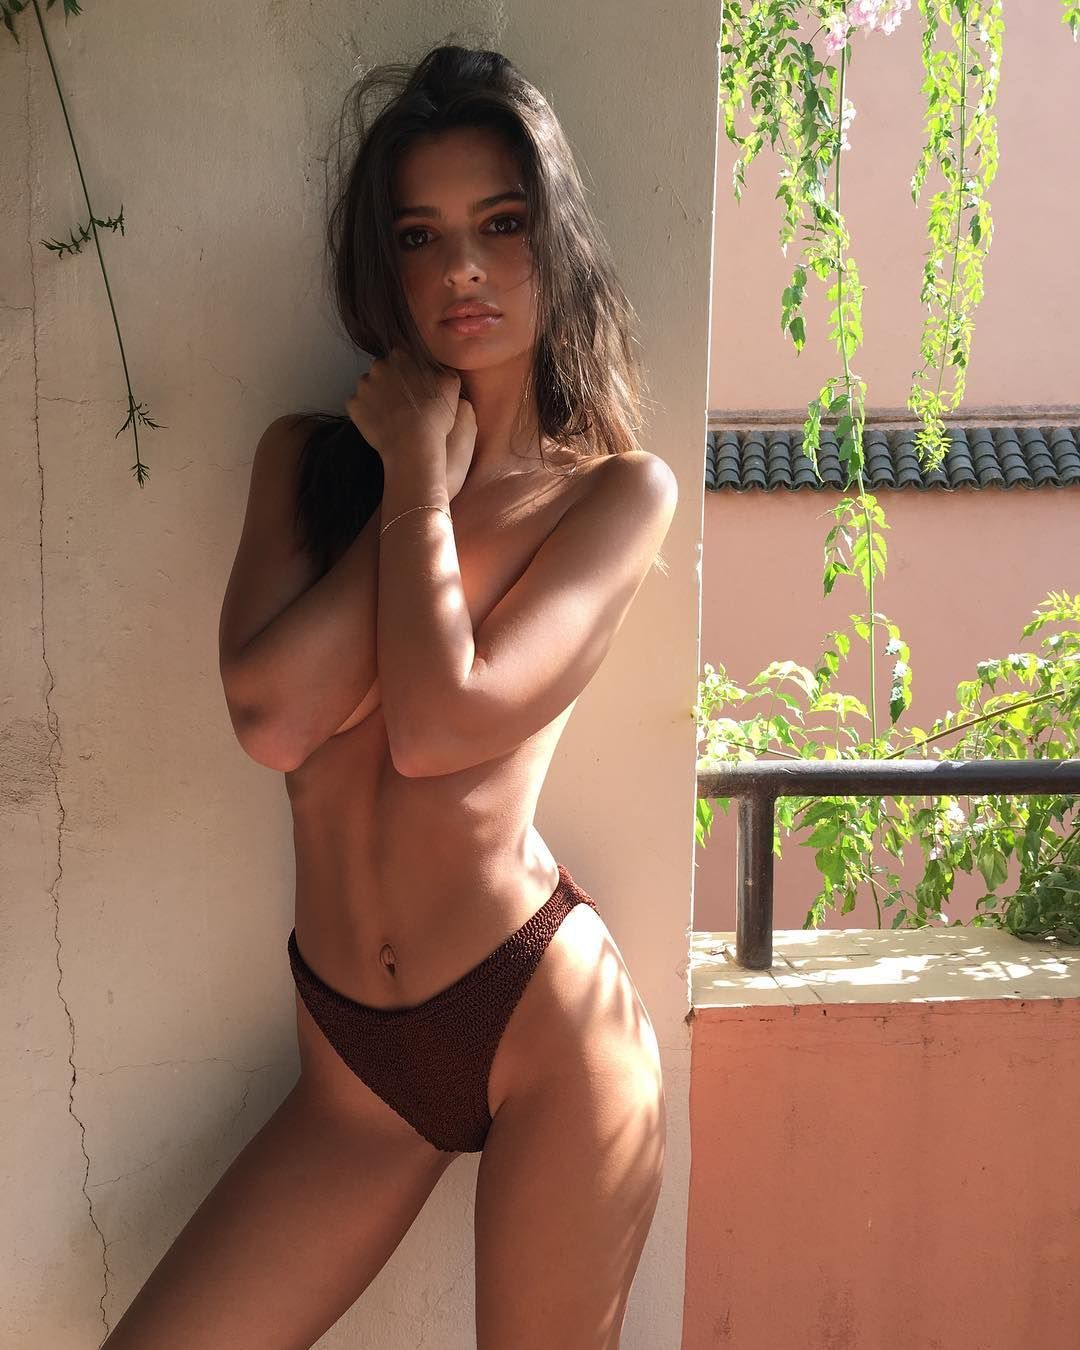 A Brief History of Emily Ratajkowski's Most Naked Moments